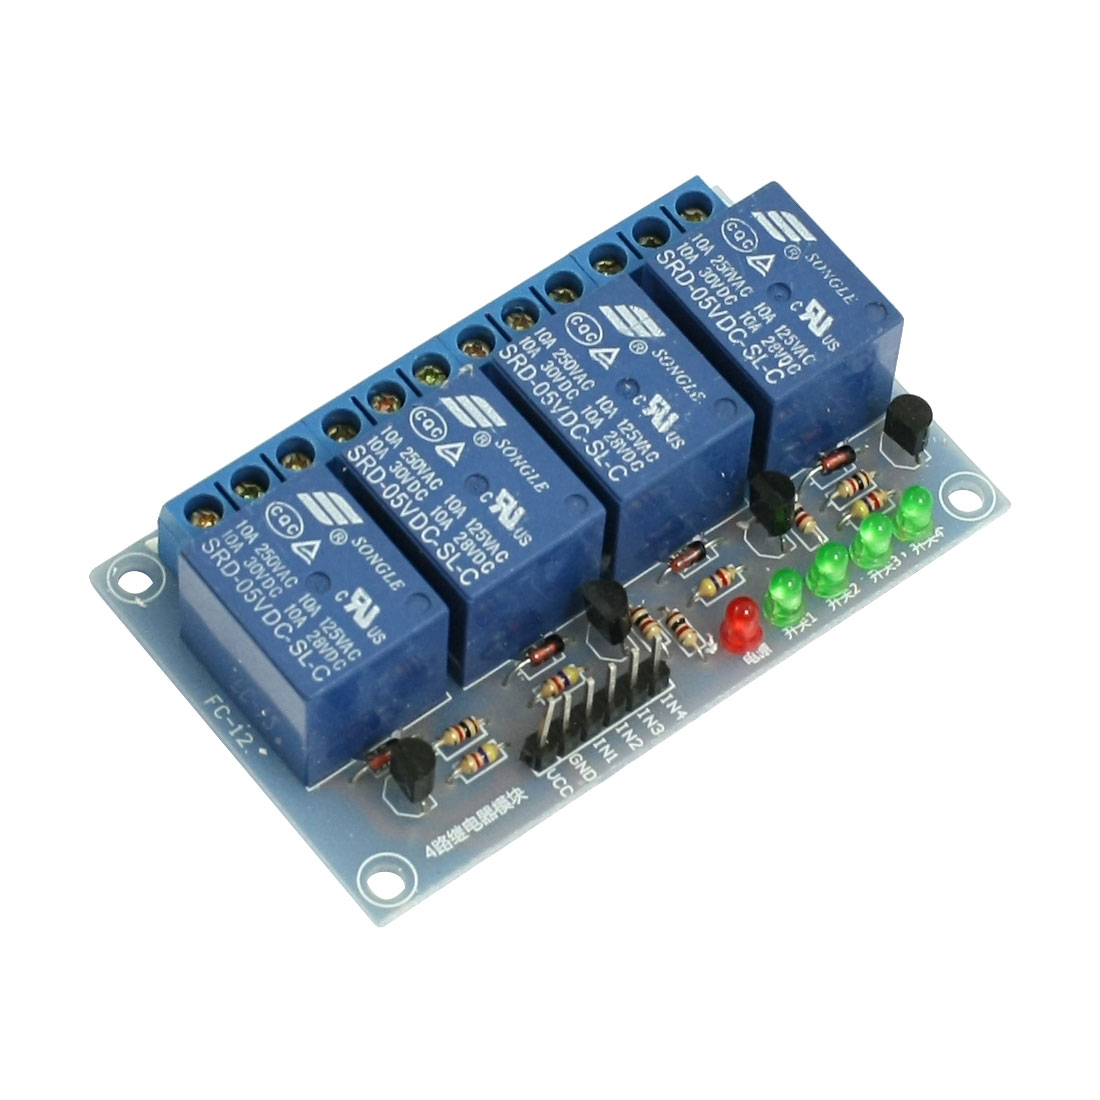 Blue SRD-05VDC-SL-C 4 Channels DC 5V Coil Power Relay Module